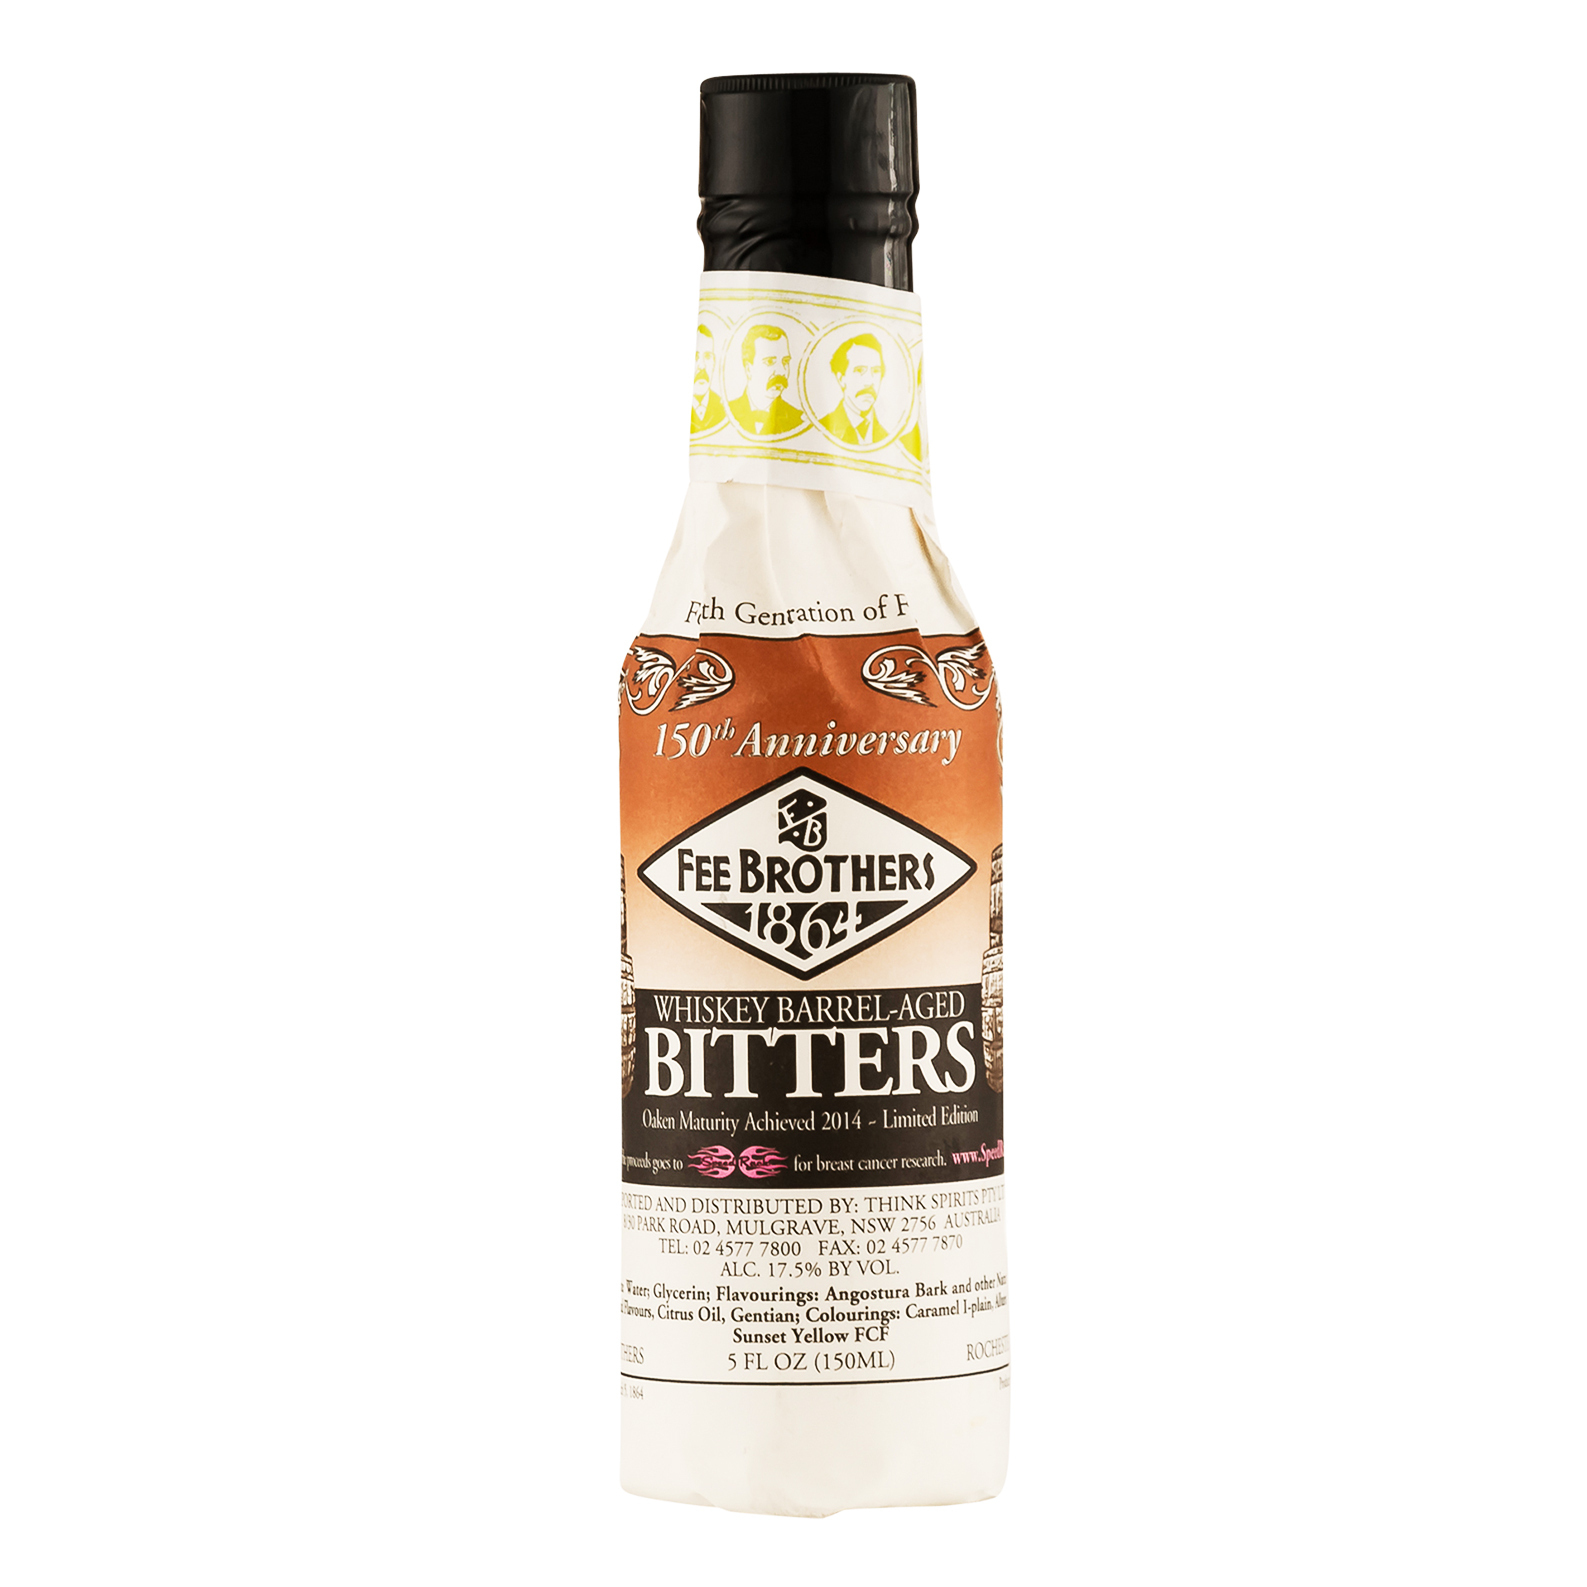 Fee Brothers 1864 Whisky Barrel Age Bitters - Bitter Aromatico - 15cl - Fee Brothers